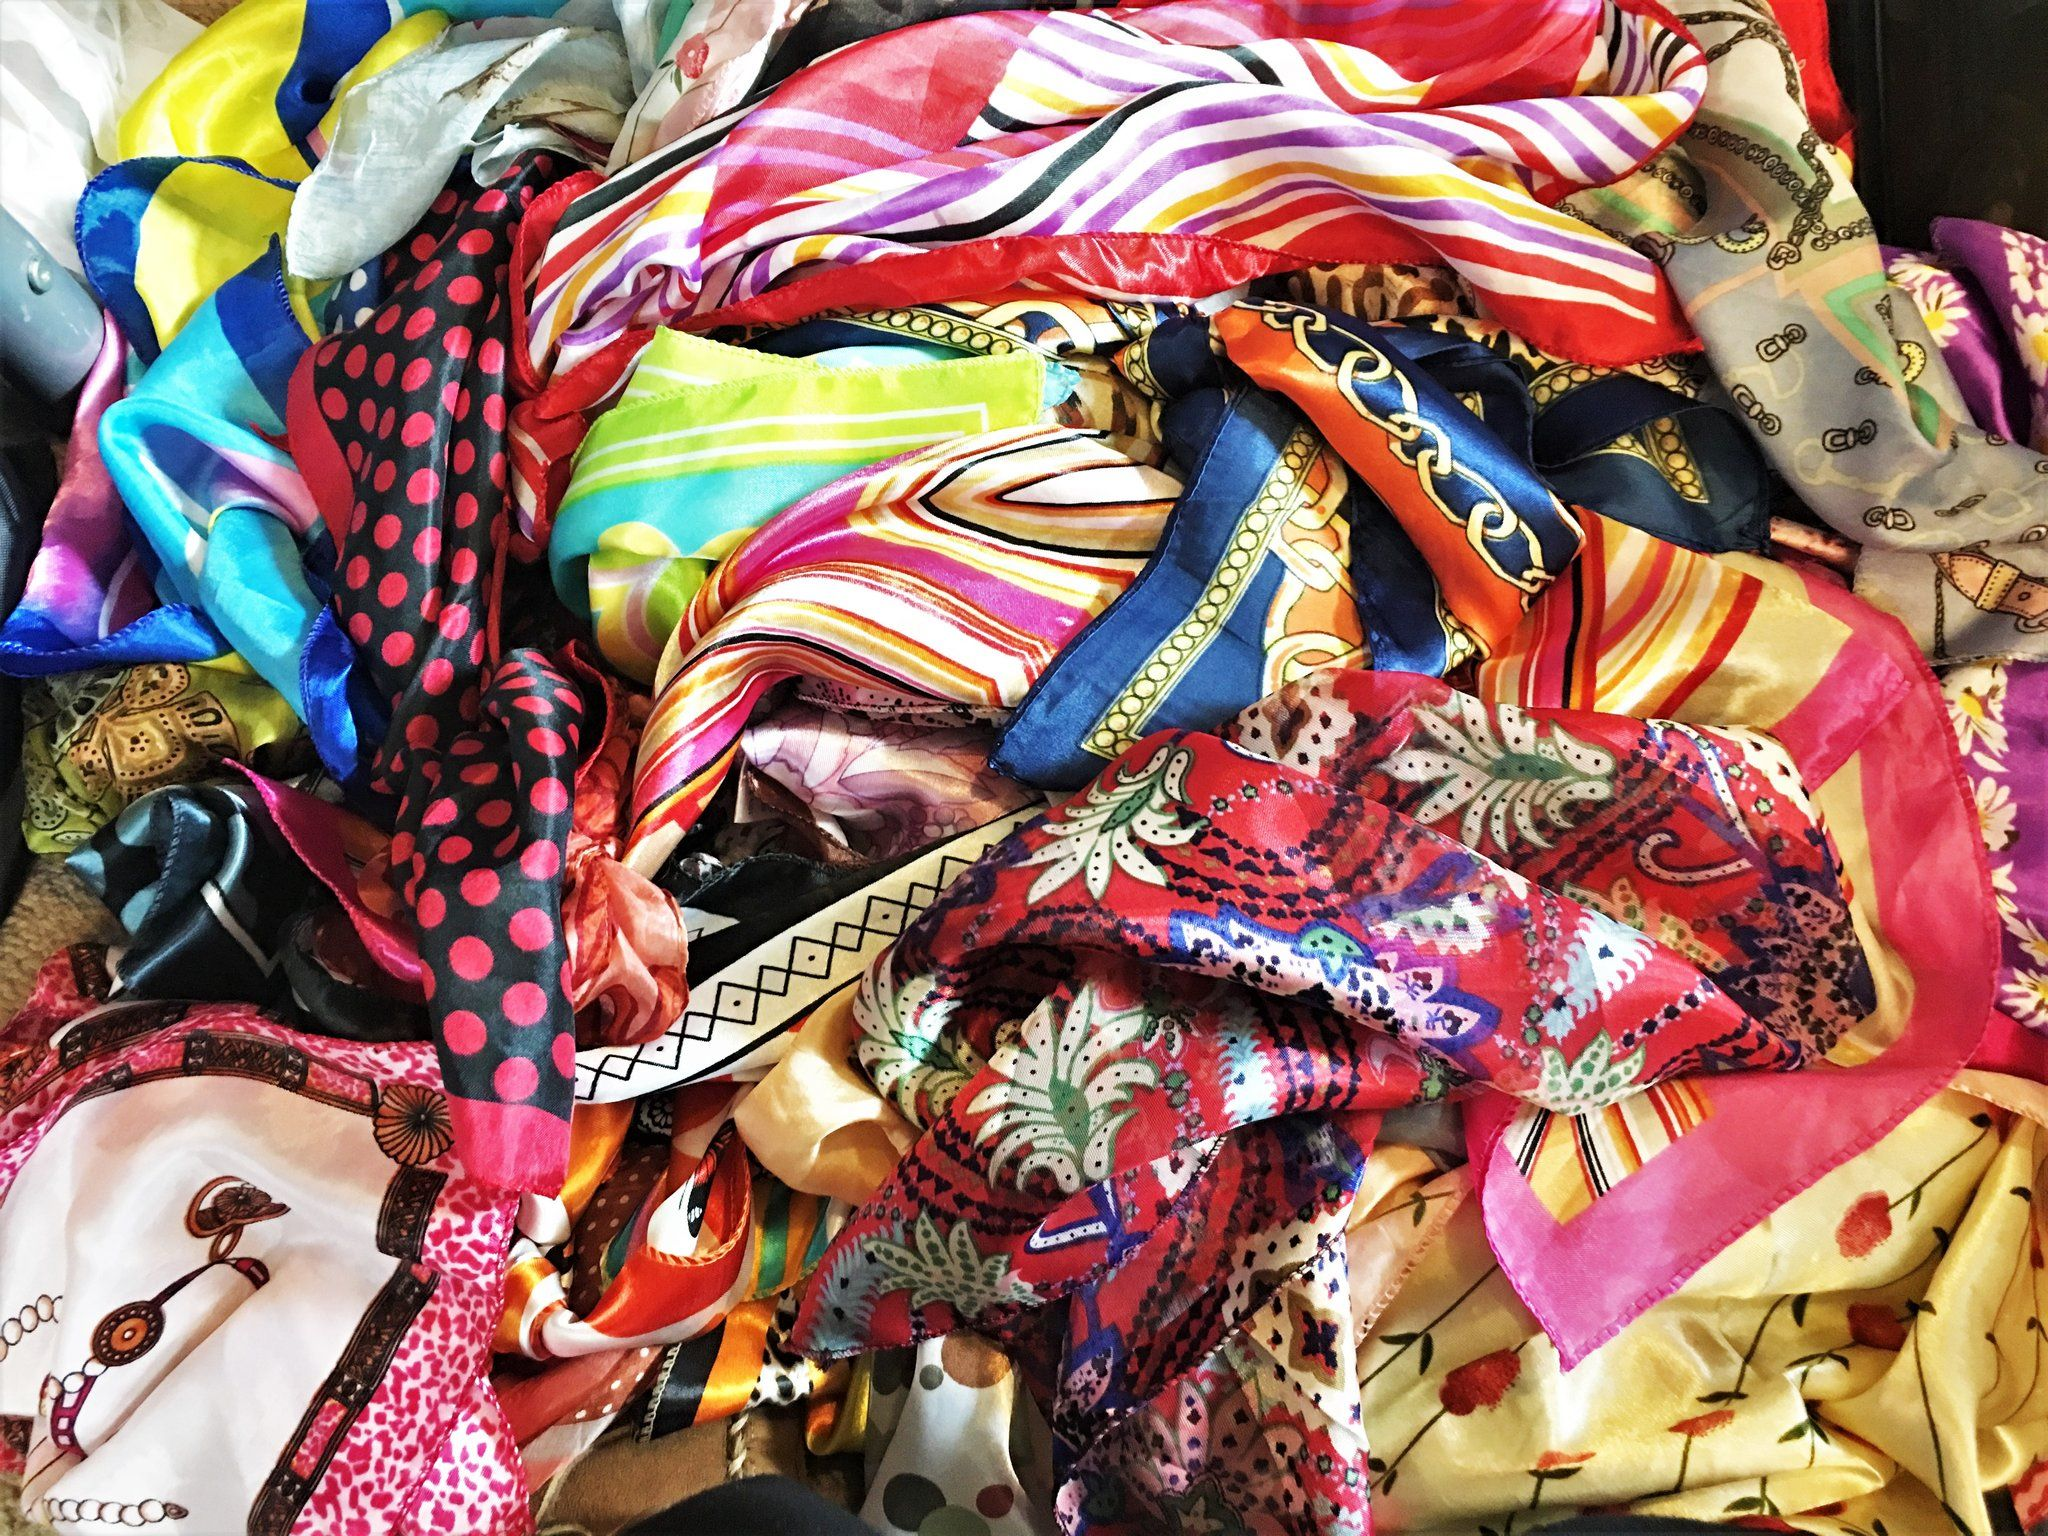 DEAL OF THE DAY - 10 Piece Scarf Grab Bag